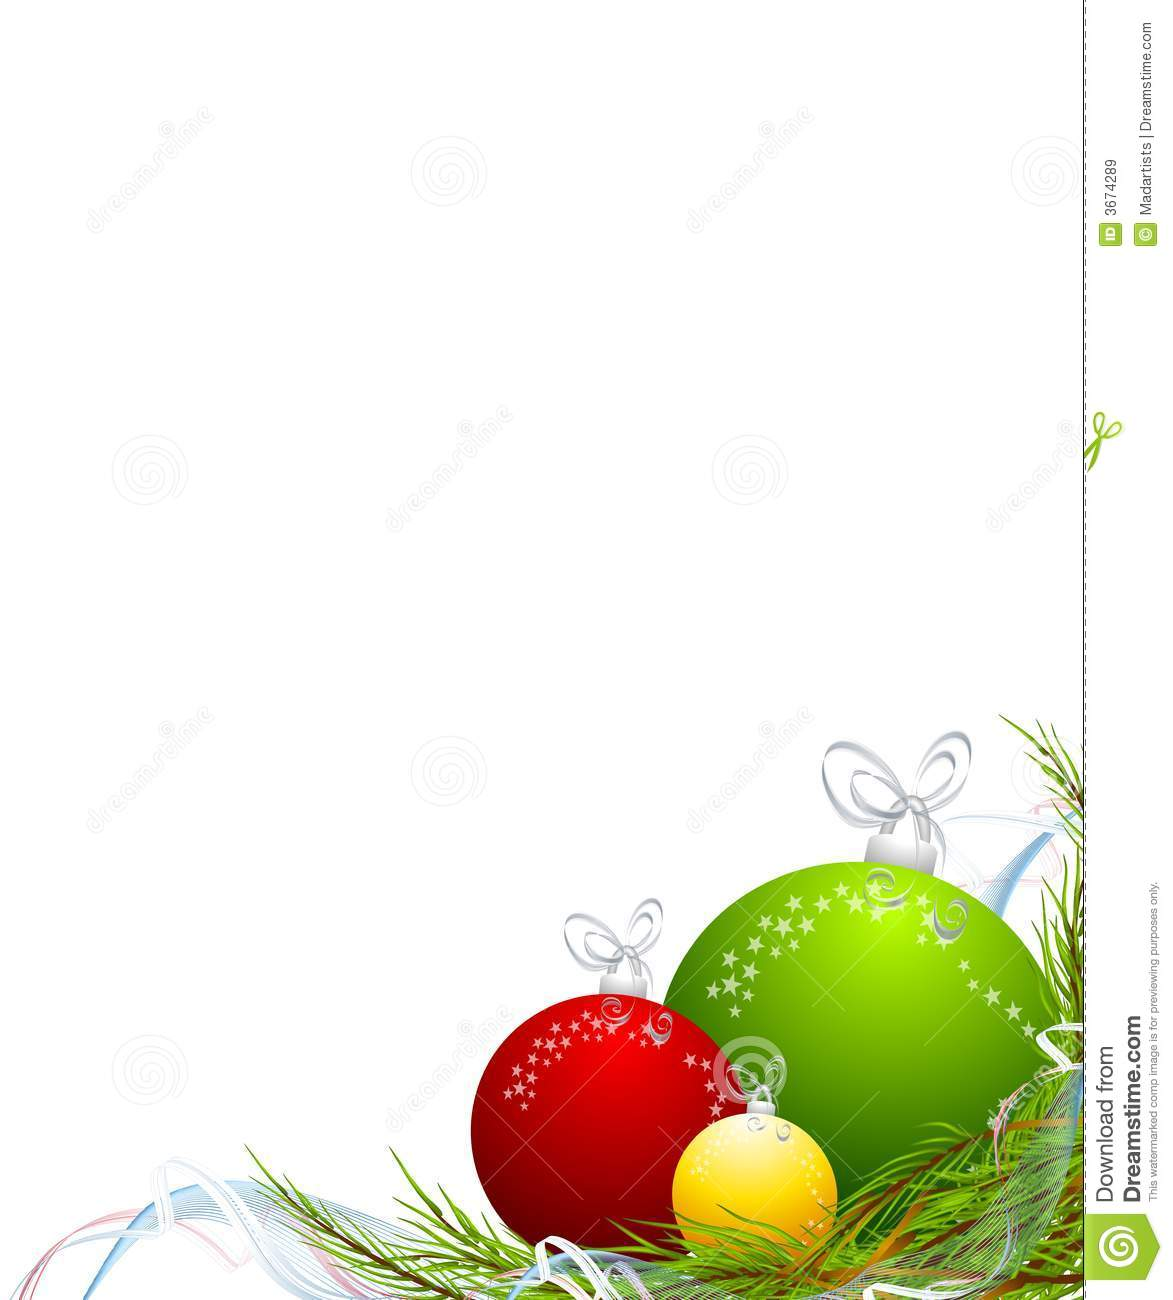 Christmas ornaments corner border stock illustration